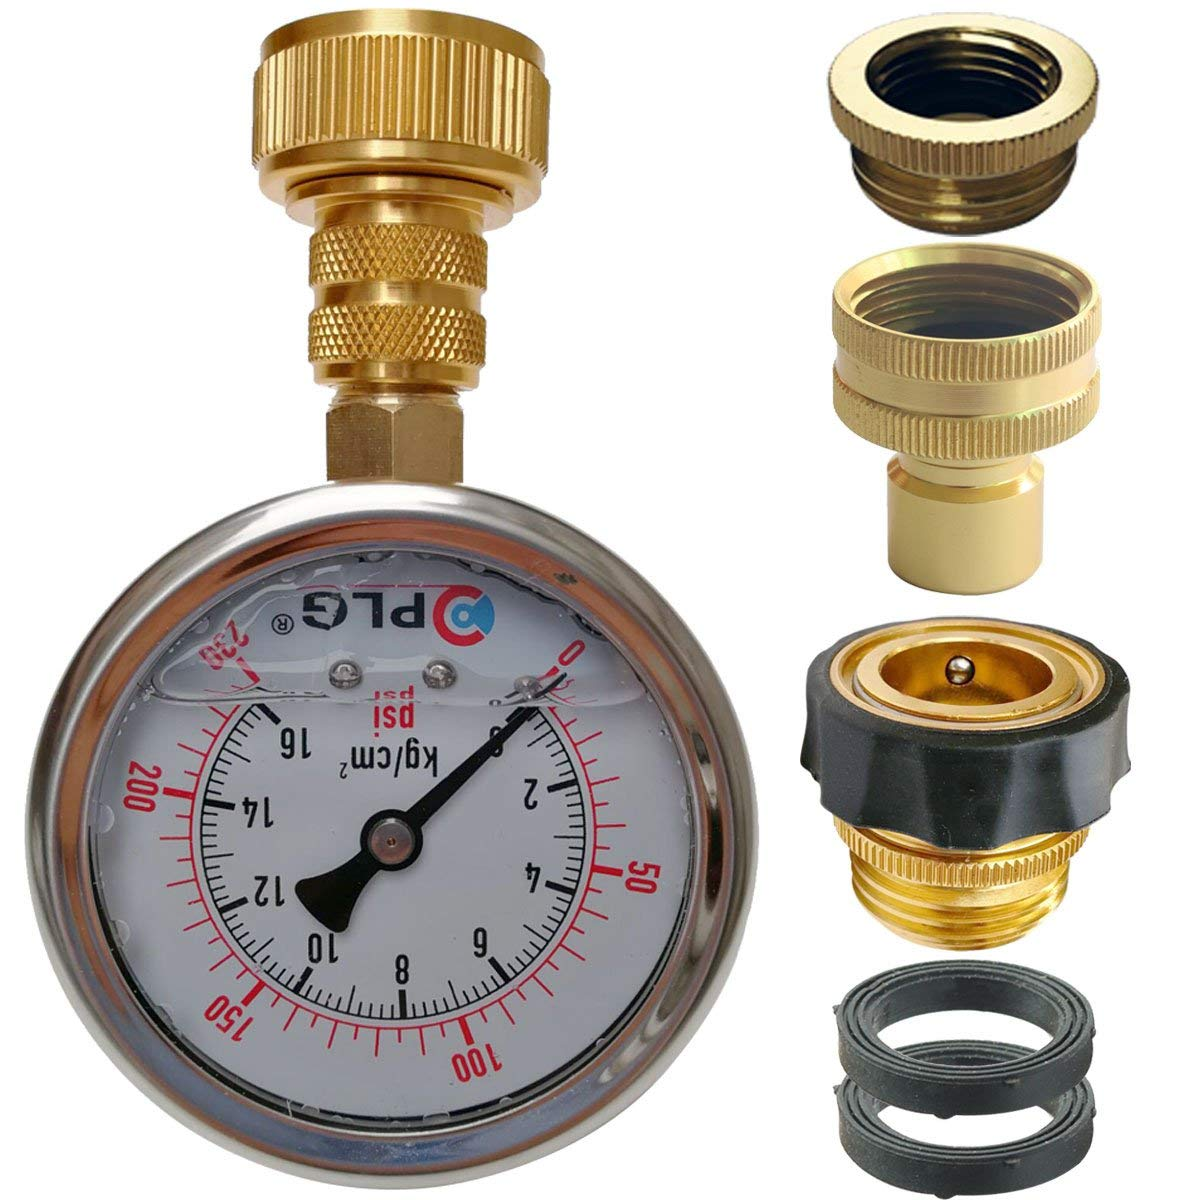 "PLG Quick Connect/Disconnect Water Pressure Gauge Kit,2 in.Gauge w/Oil, 0 psi 230 psi,Push-Lock 3/4"" GHT Hose Connector,3/4"" to 1/2"" Spigot Adapters"